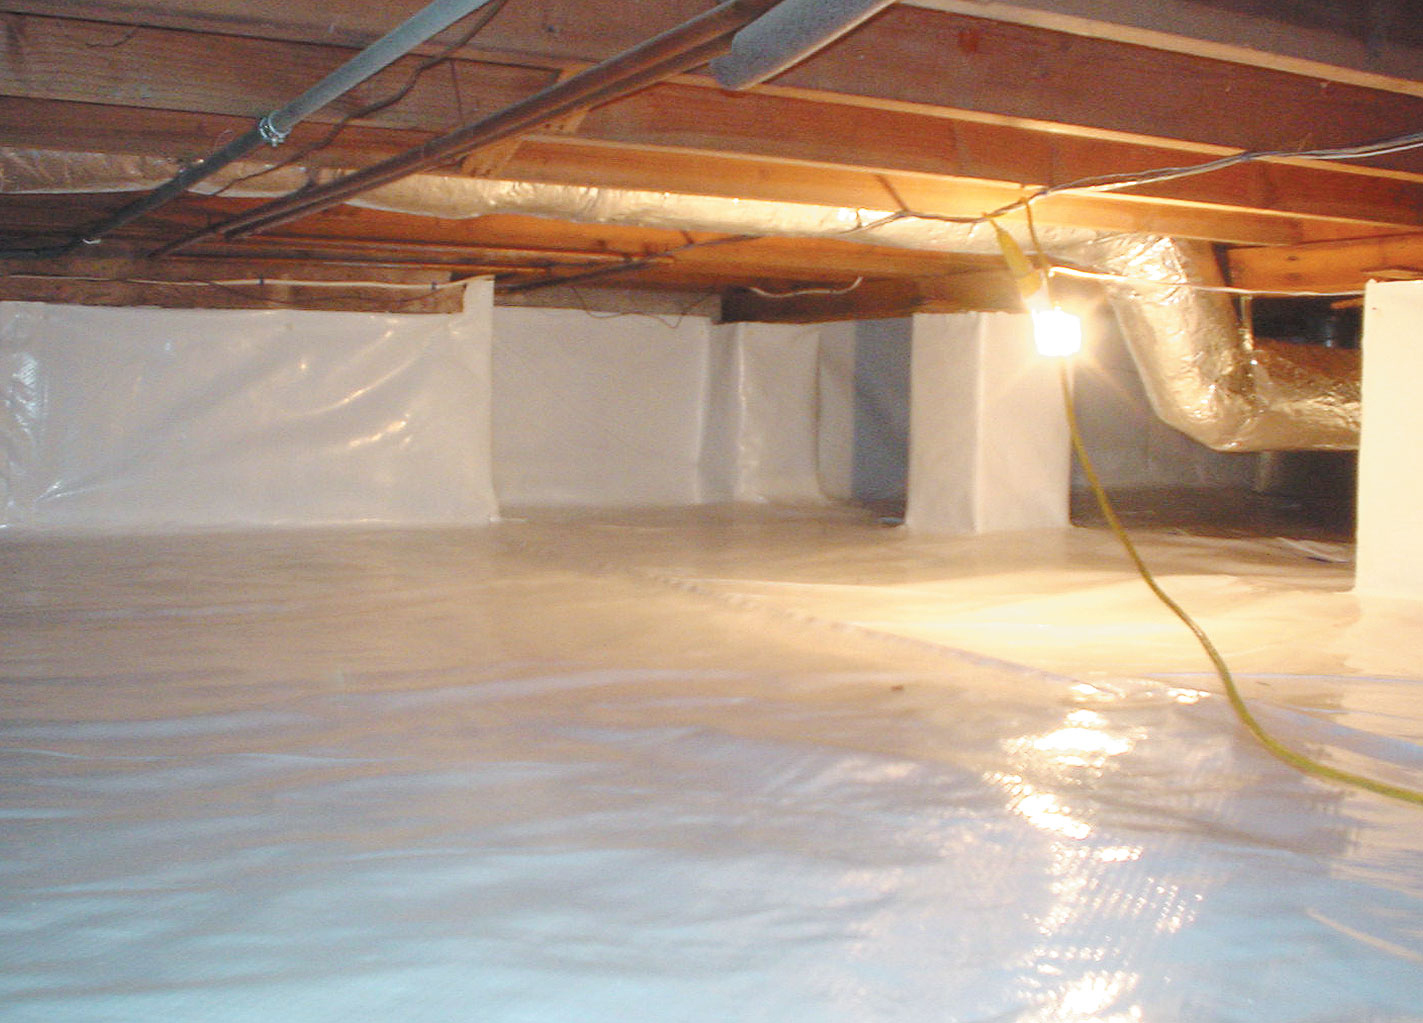 5 Reasons For Using Encapsulation In Crawl Space Moisture